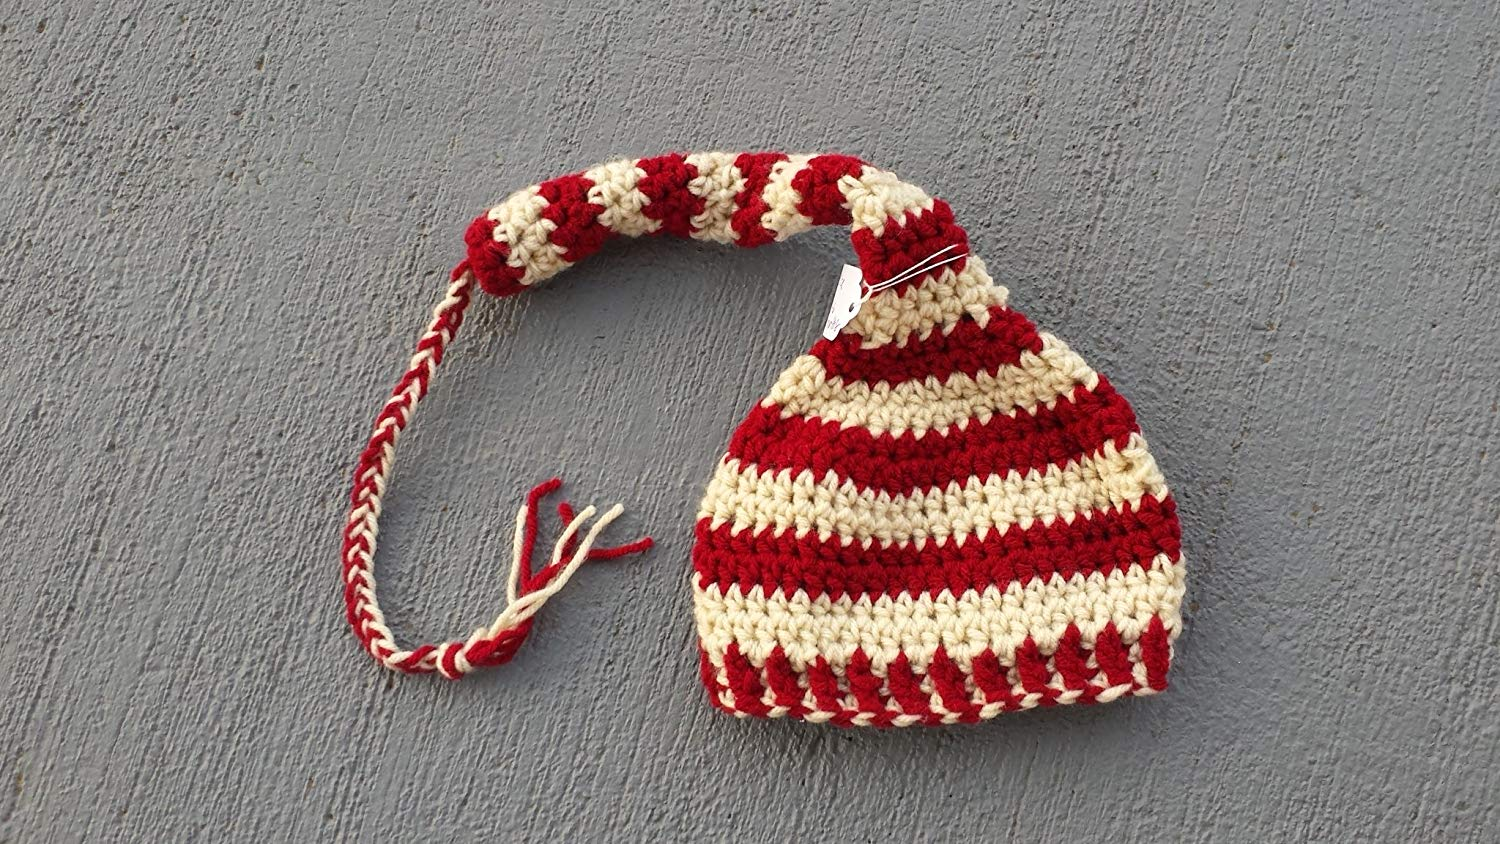 666e03d7d02 Get Quotations · Elf style braided tail stocking hat for baby. SIZE 3 to 6  months. Burgundy